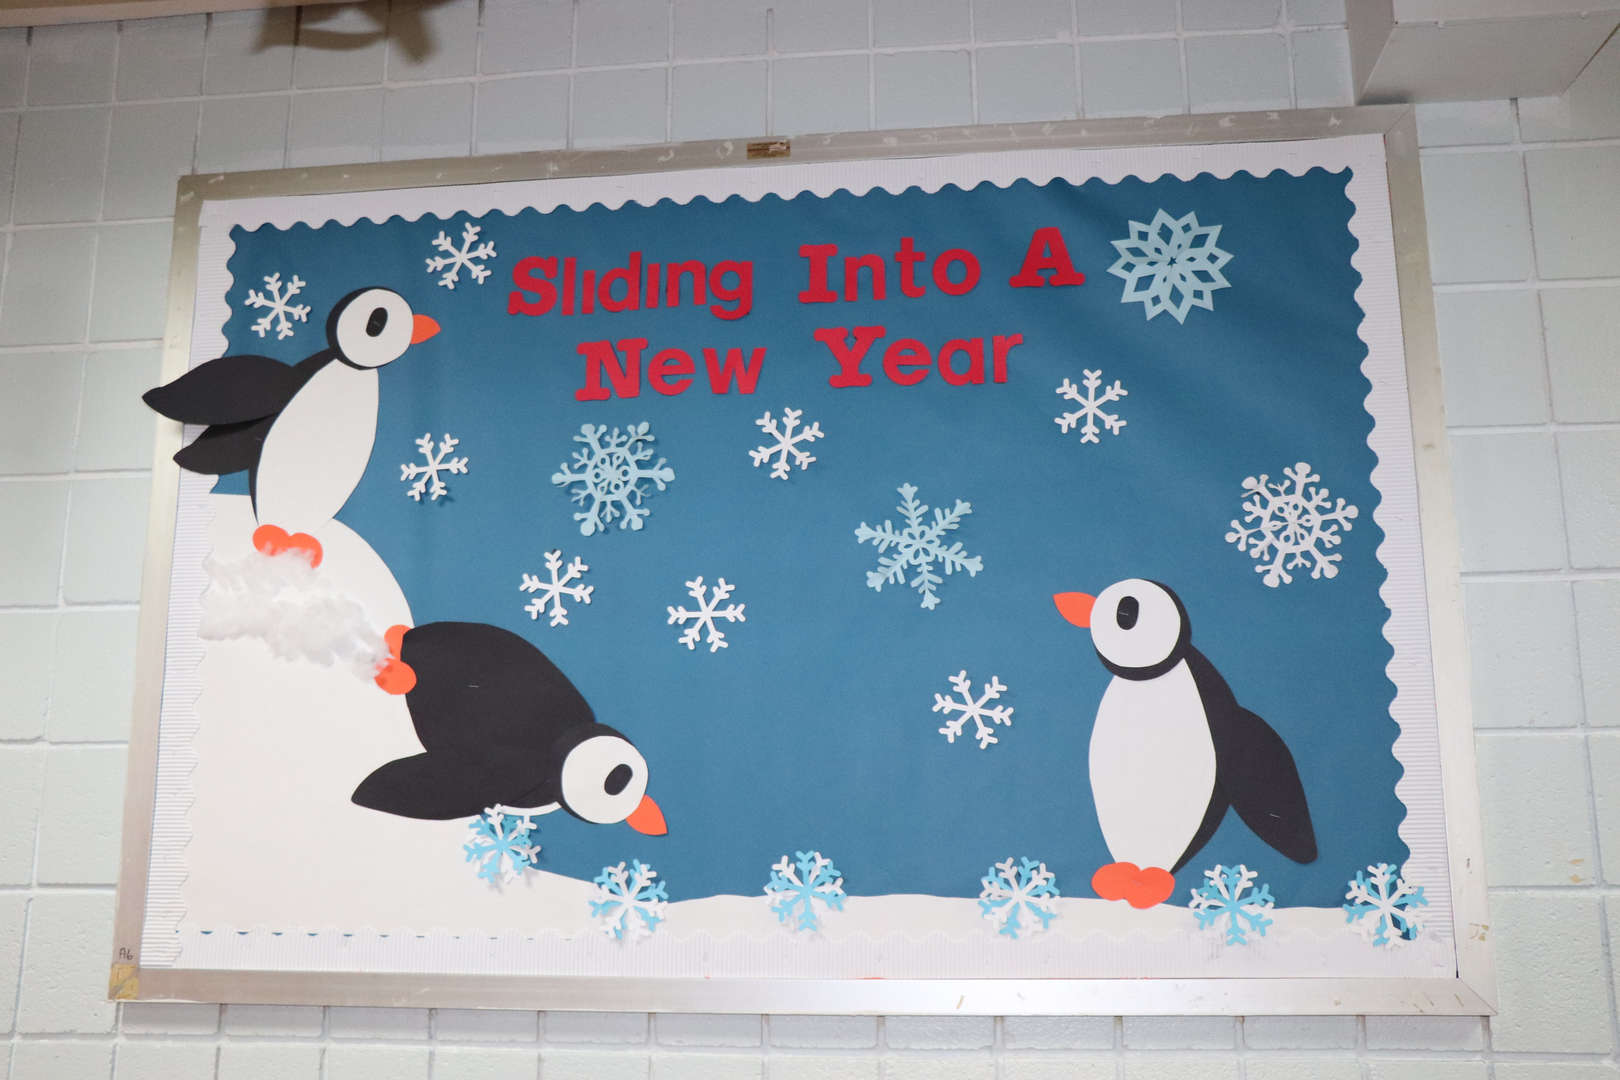 Another winter themed bulletin board in the main lobby.